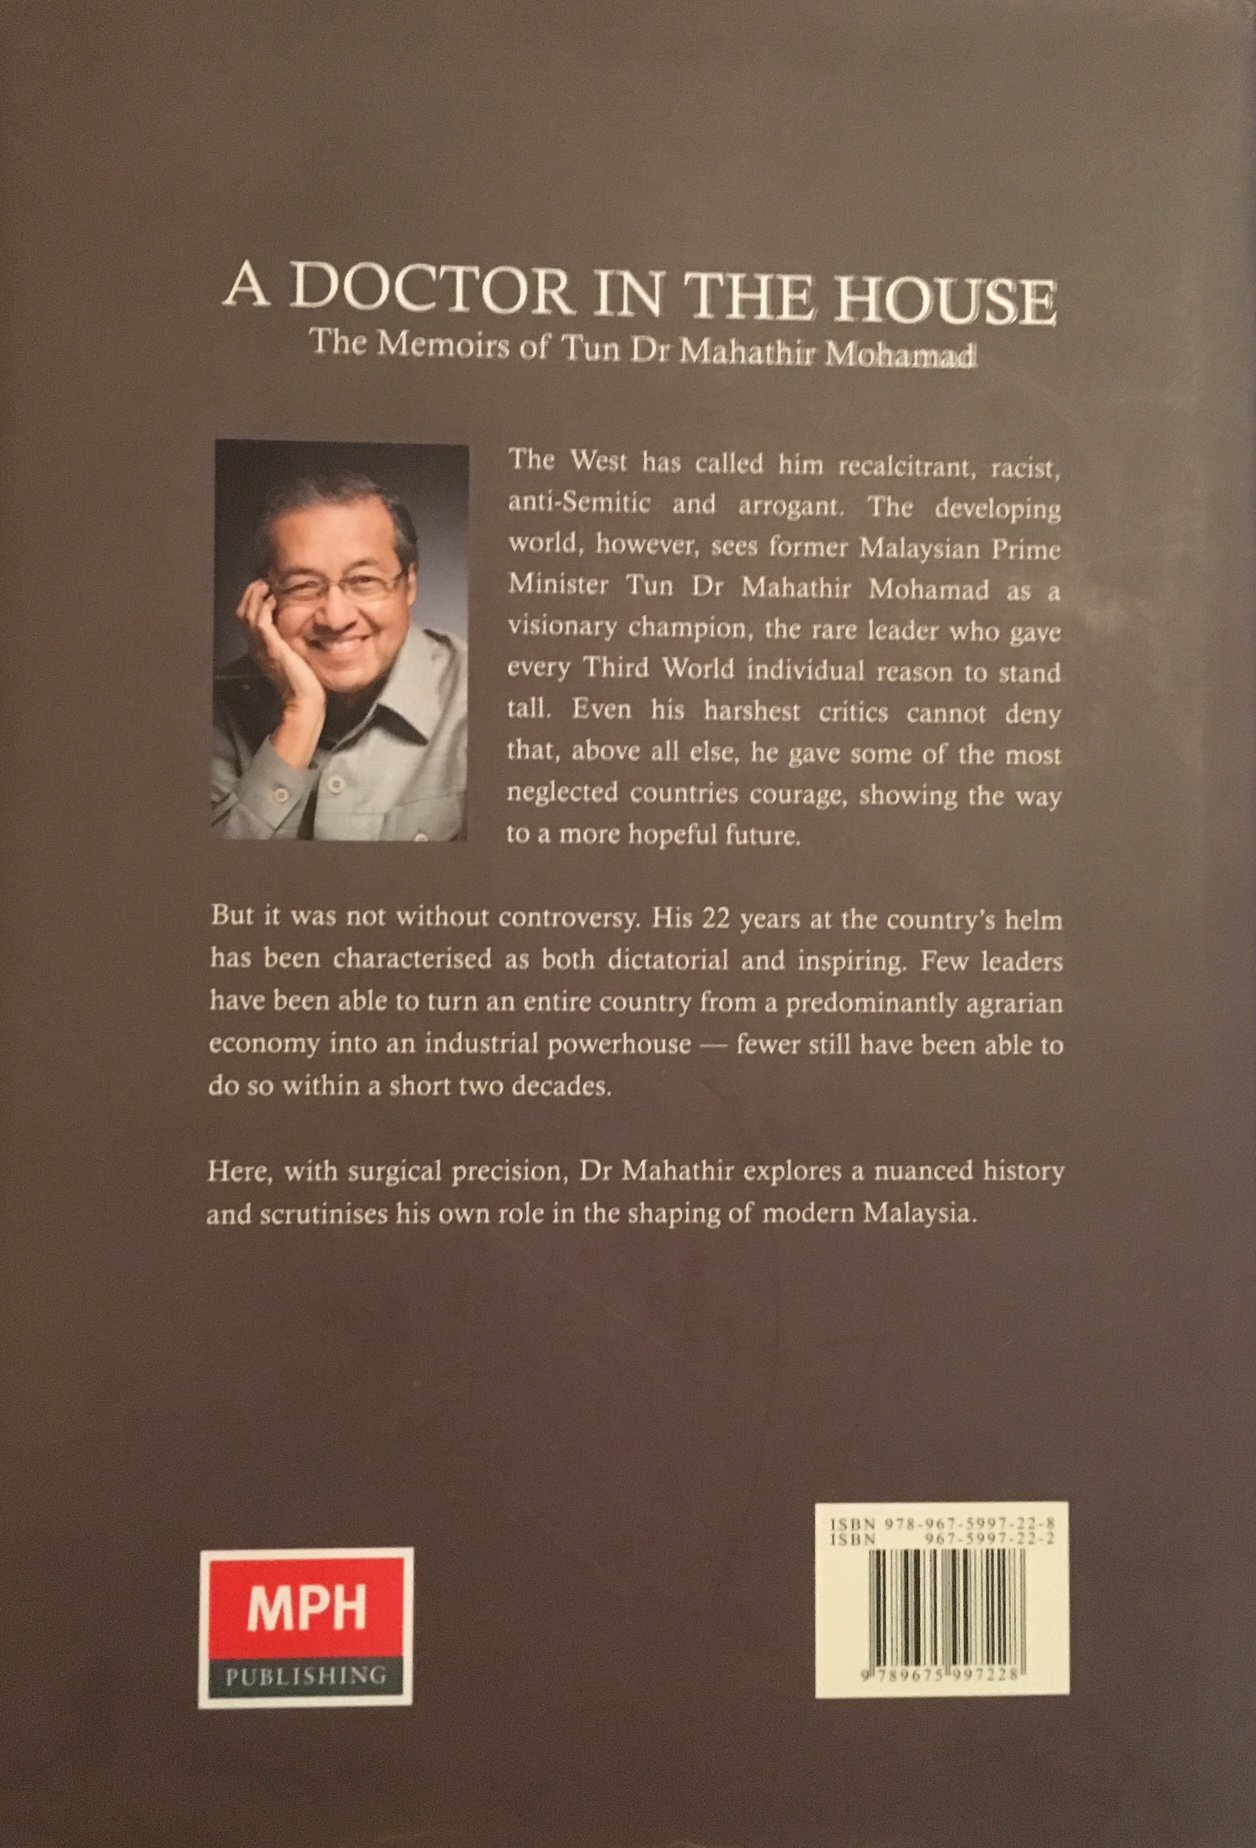 Download A Doctor In The House The Memoirs Of Tun Dr Mahathir Mohamad By Mahathir Mohamad